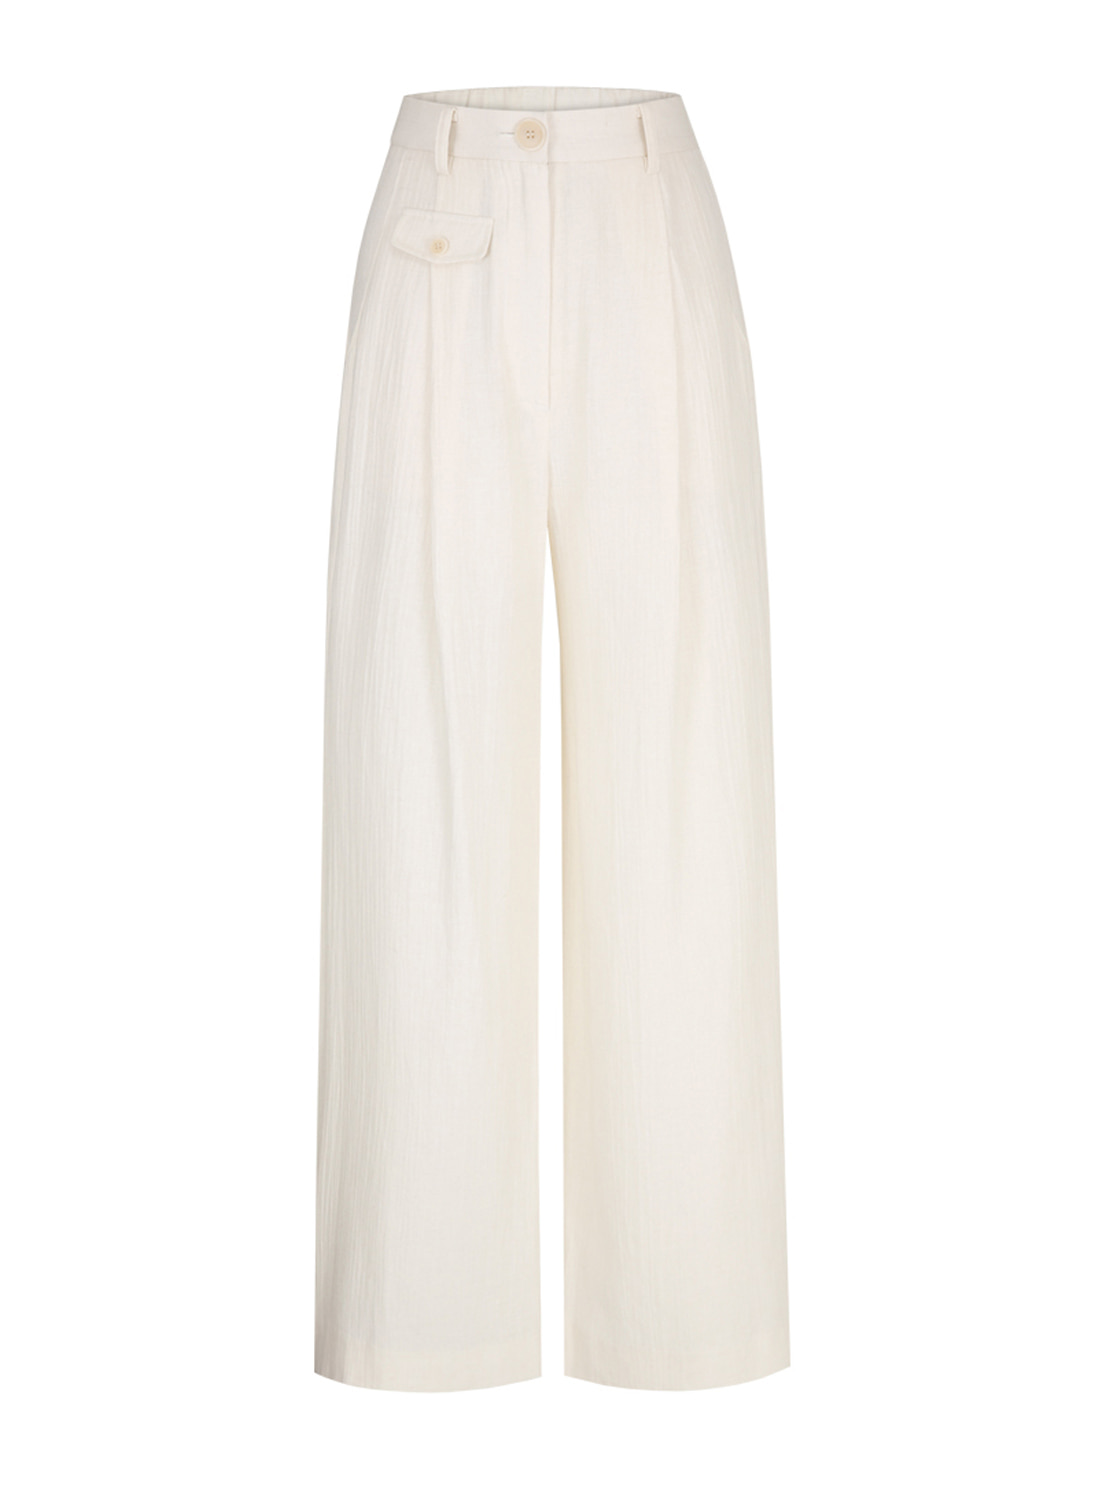 SS18 WIDE PANTS IVORY